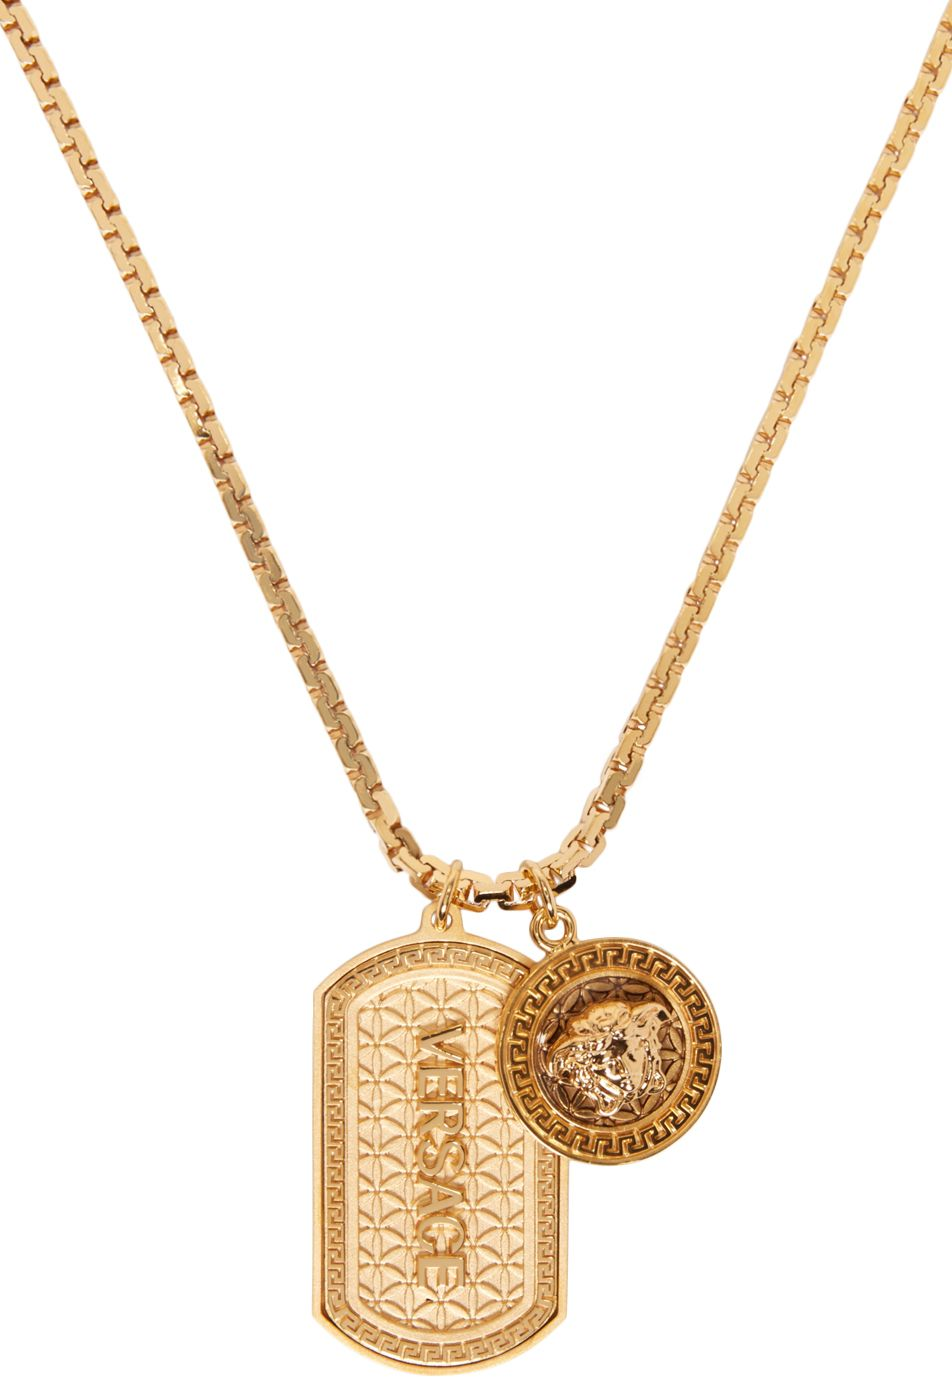 Versace Gold Dog Tag Necklace SSENSE Jewelry Pinterest